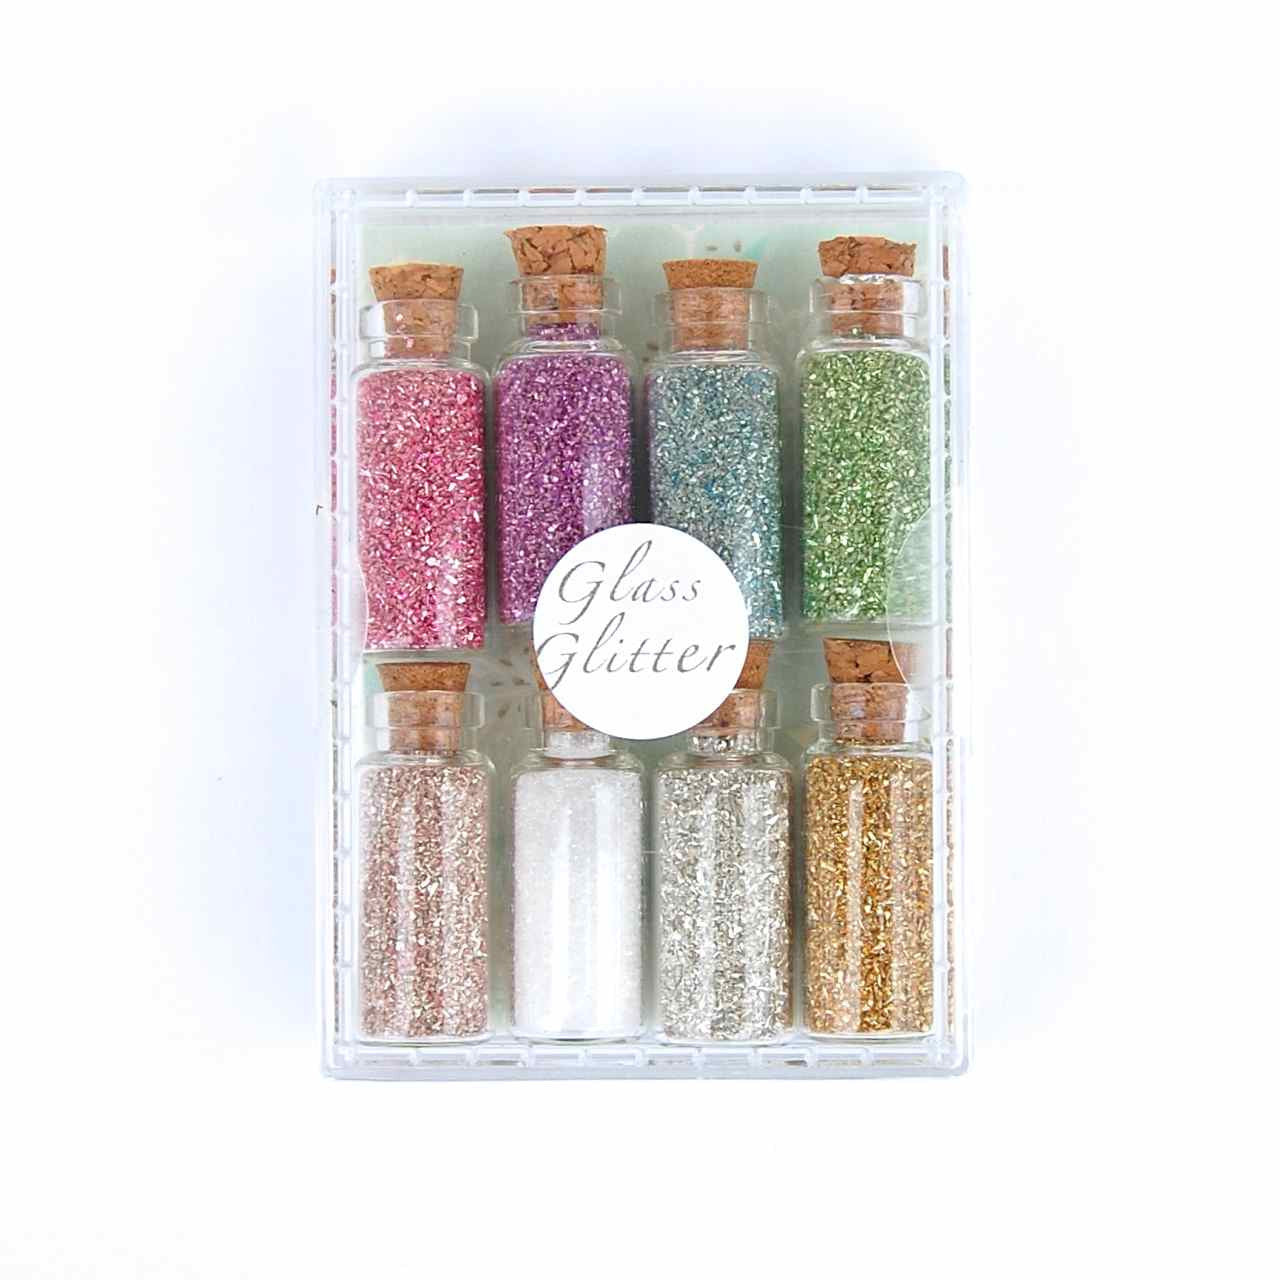 Glass-Glitter-Assortment